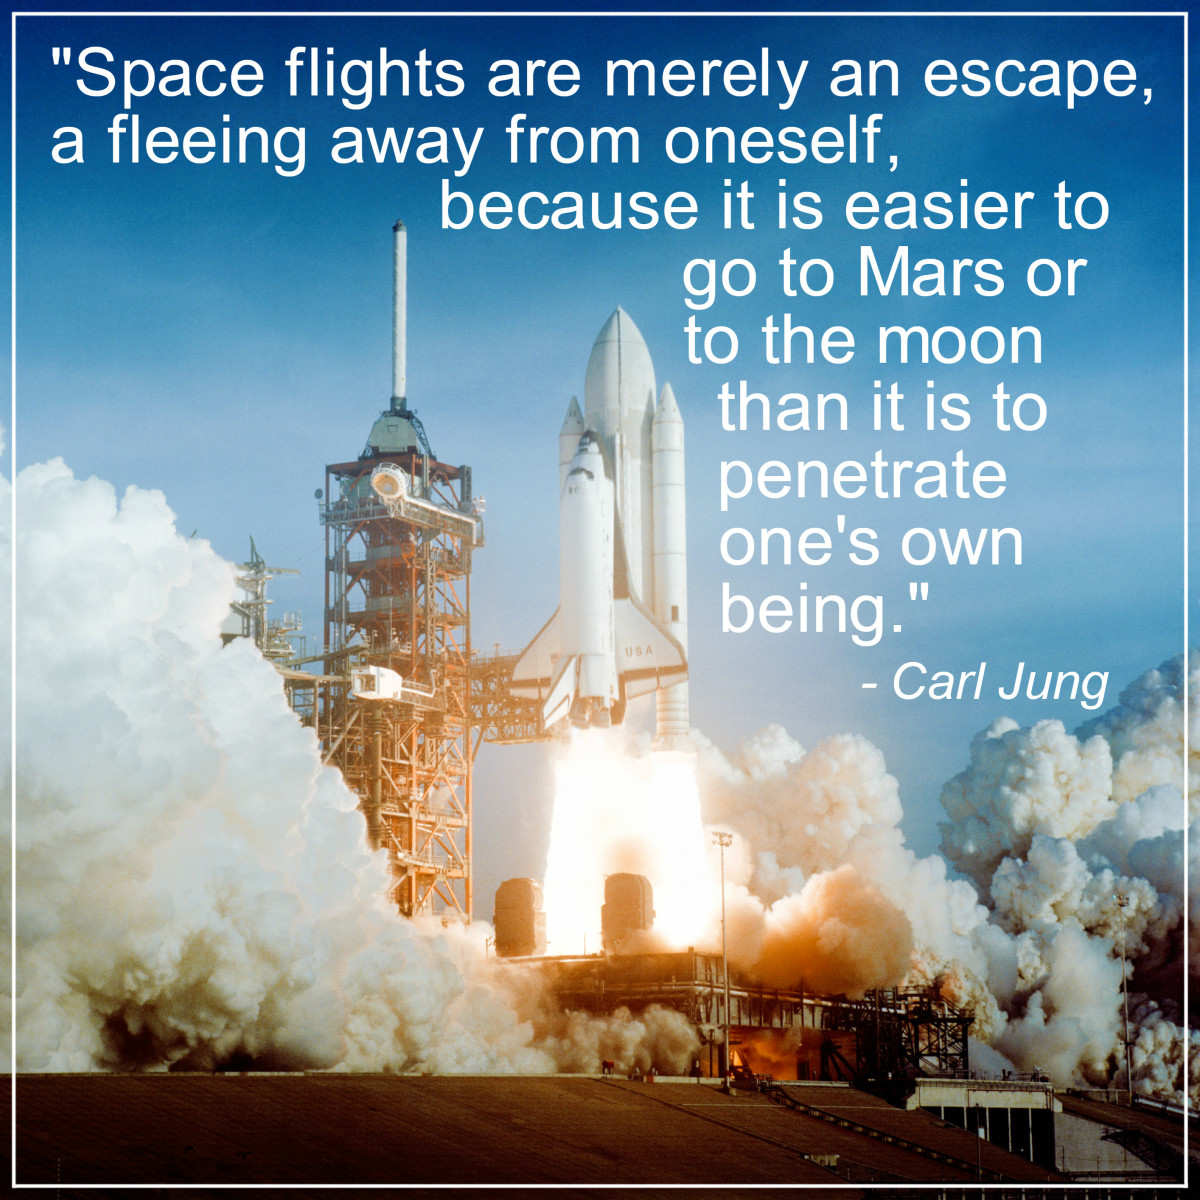 """Space flights are merely an escape, a fleeing away from oneself, because it is easier to go to Mars or to the moon than it is to penetrate one's own being."" - Carl Jung, Swiss psychologist"